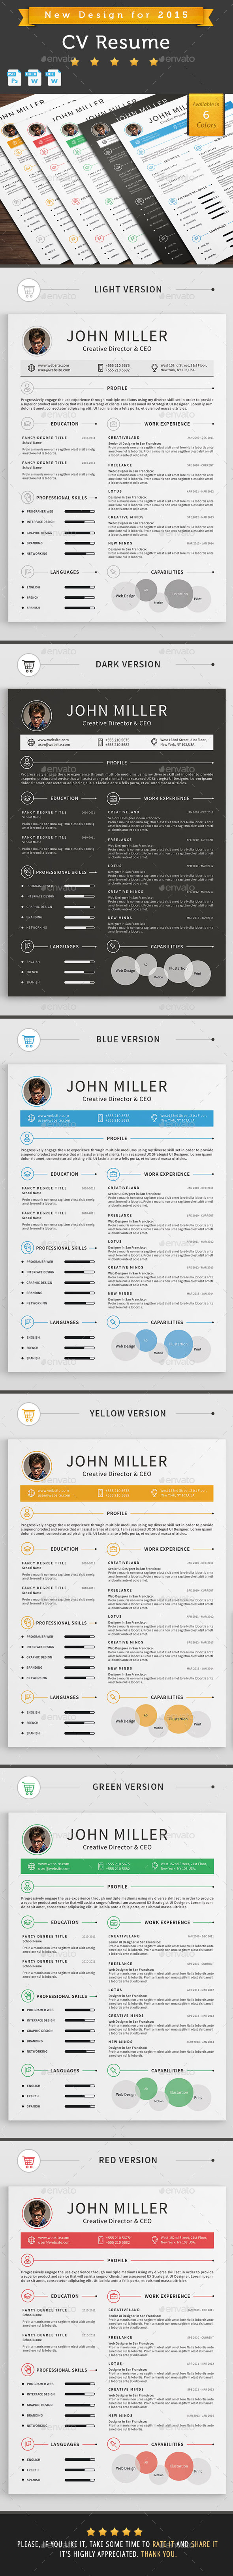 GraphicRiver CV Resume 10436406